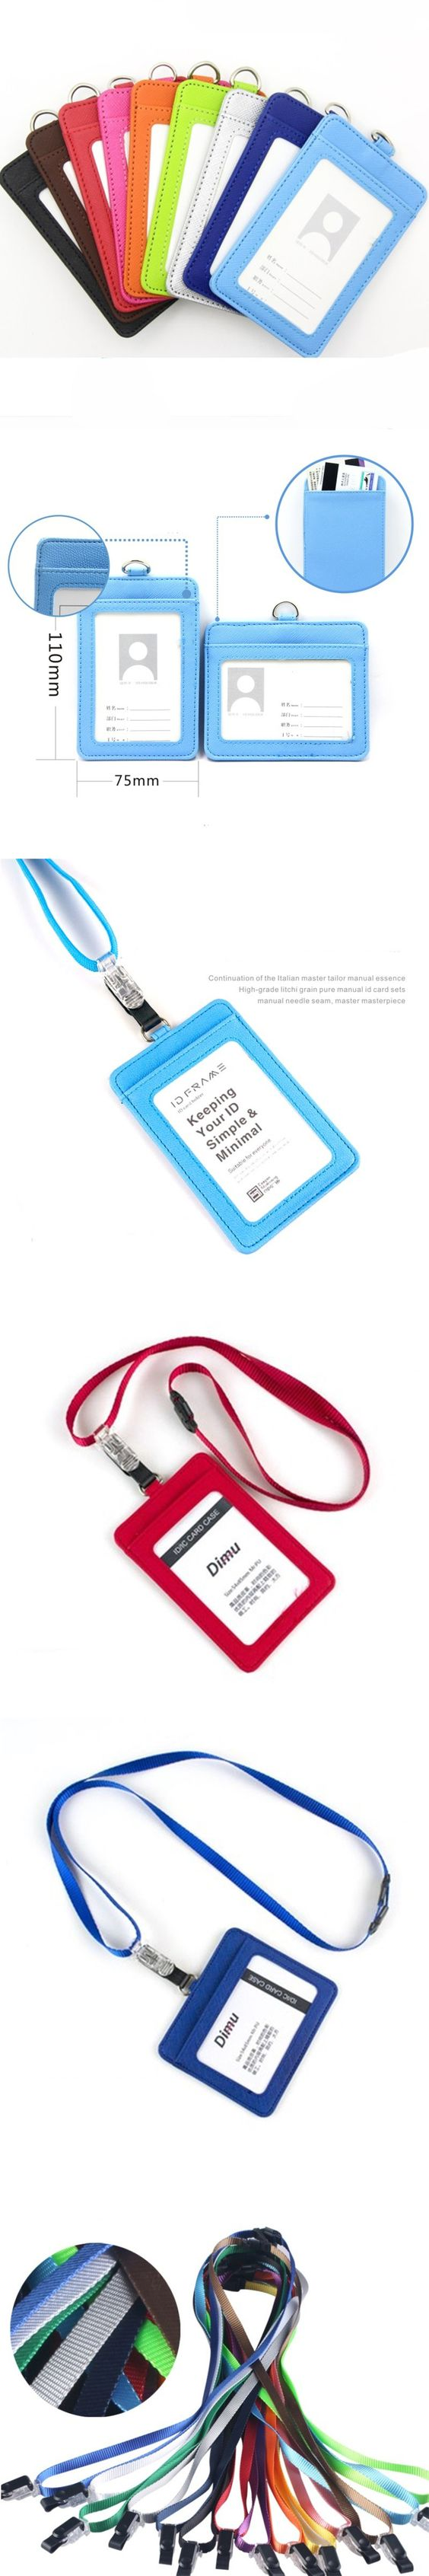 New arrival PU leather Credit Card Holder case Work Permit Candy color ID Card holders Neck Strap Bus Card ID holders lanyard $7.88